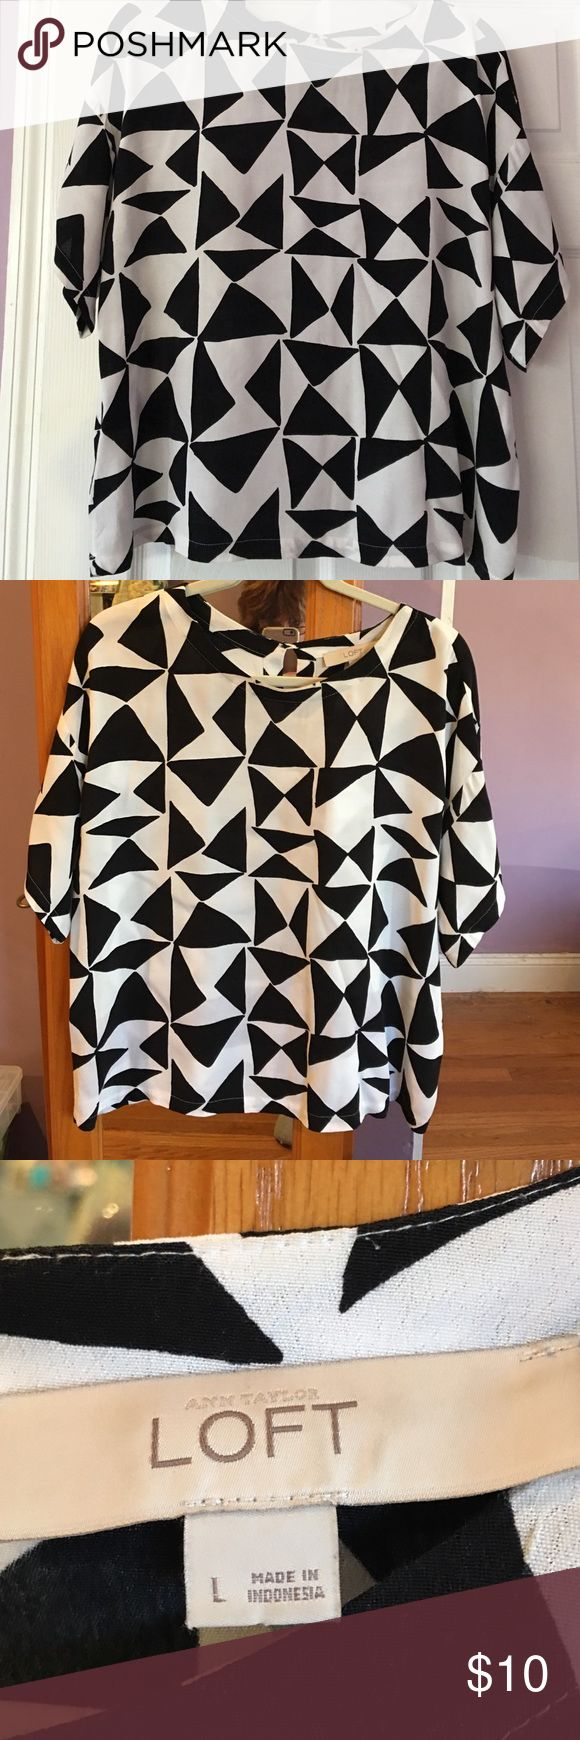 Loft Brand top. Short sleeve in black and white Loft top Size Large  short sleeves. Very nice black and white pattern. 100% Rayon  machine wash cold. I used either delicate cycle or dry cleaned. Very good condition LOFT Tops Blouses